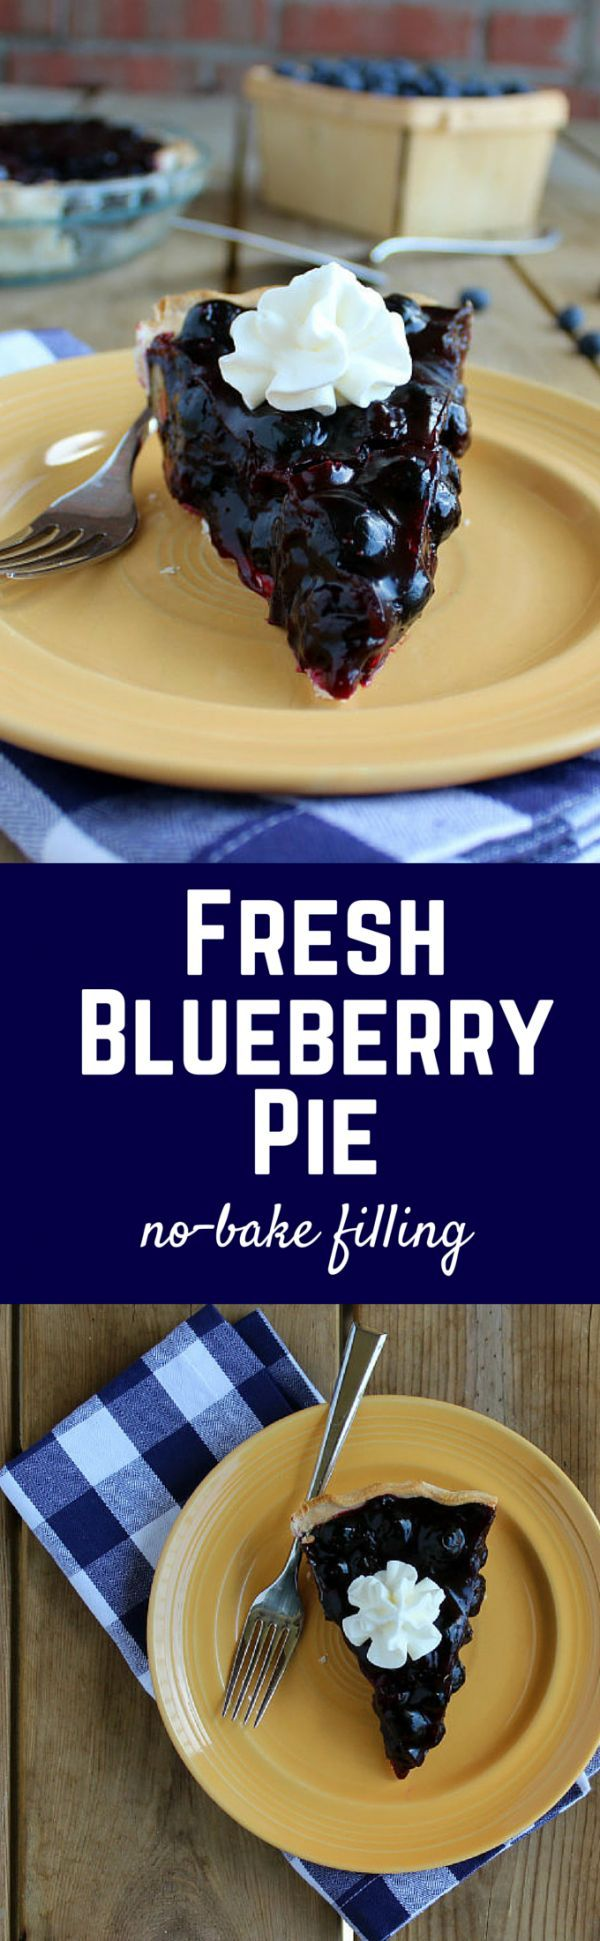 Fresh Blueberry Pie - This summertime recipe is one of my absolute favorites. The filling is no-bake! Get the easy recipe on http://RachelCooks.com.